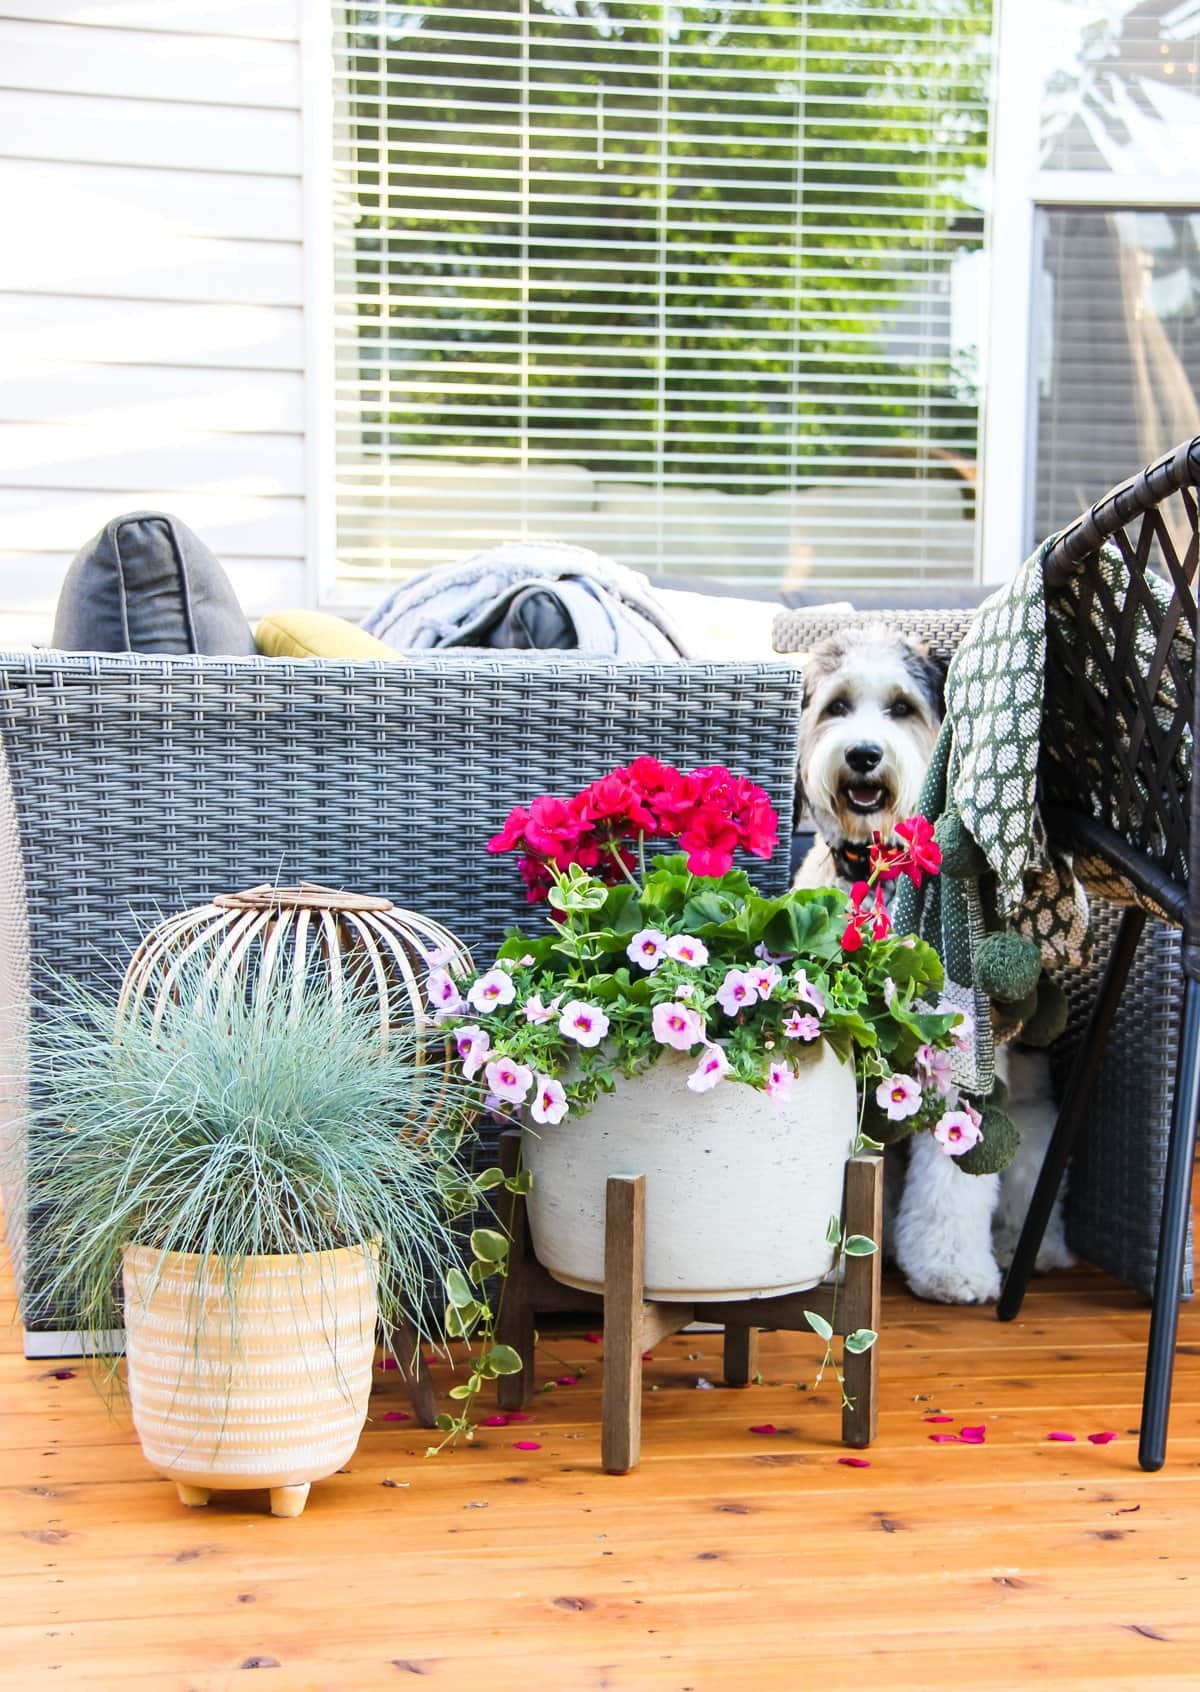 a planter of bluegrass, a planter of pink flowers and a wicker candle holder. in the background is a black and white dog